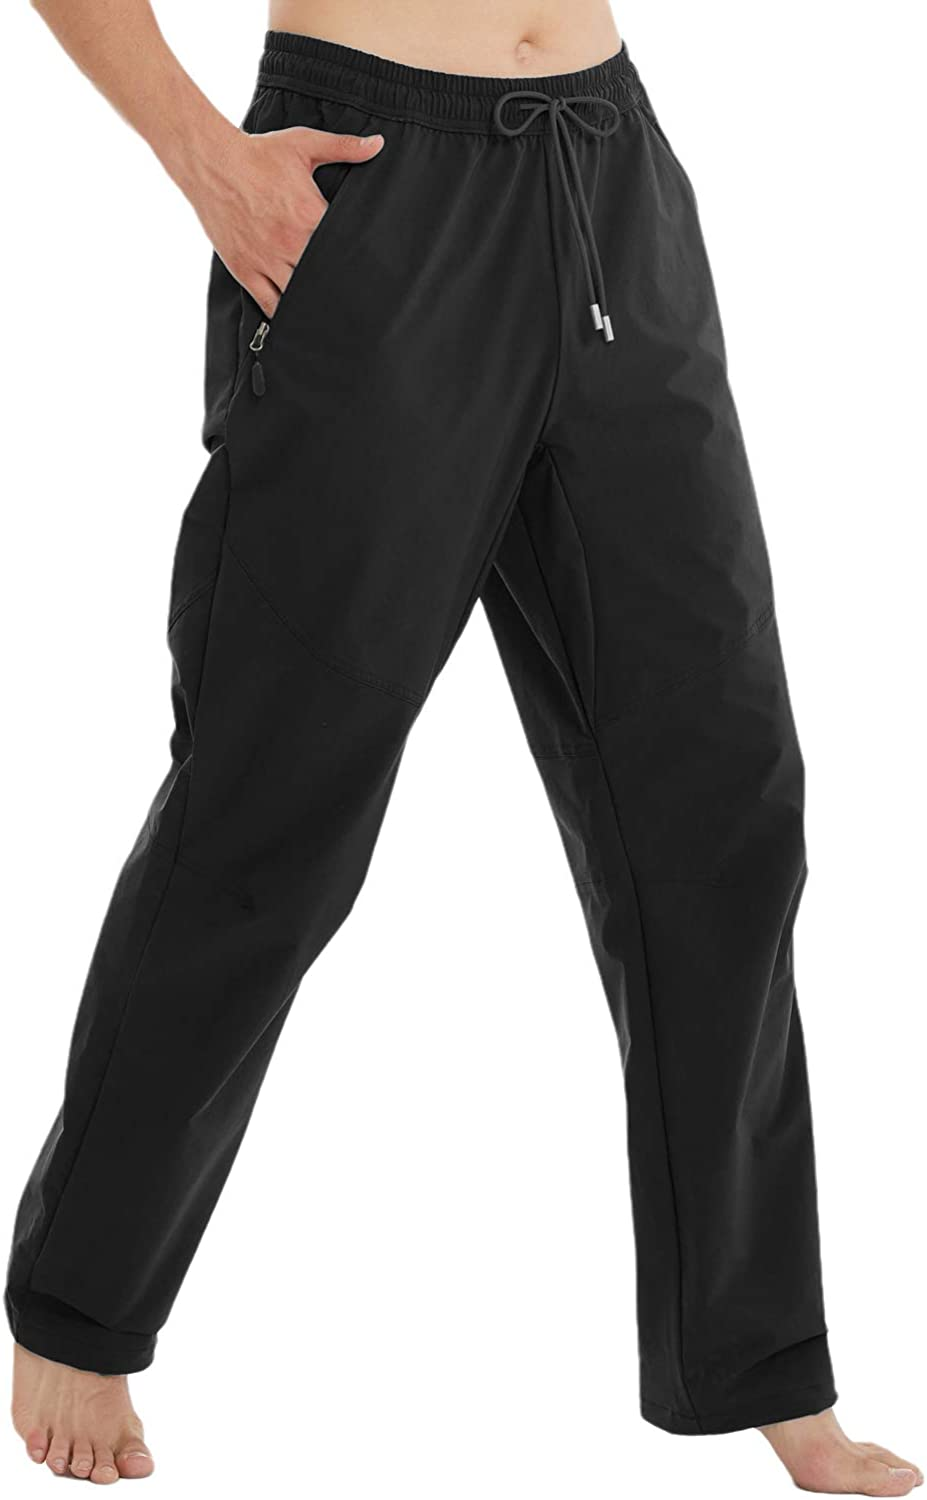 Arisonho Men's Quick Dry Running Mountain Travel Athletic Pants with Zipper Pockets